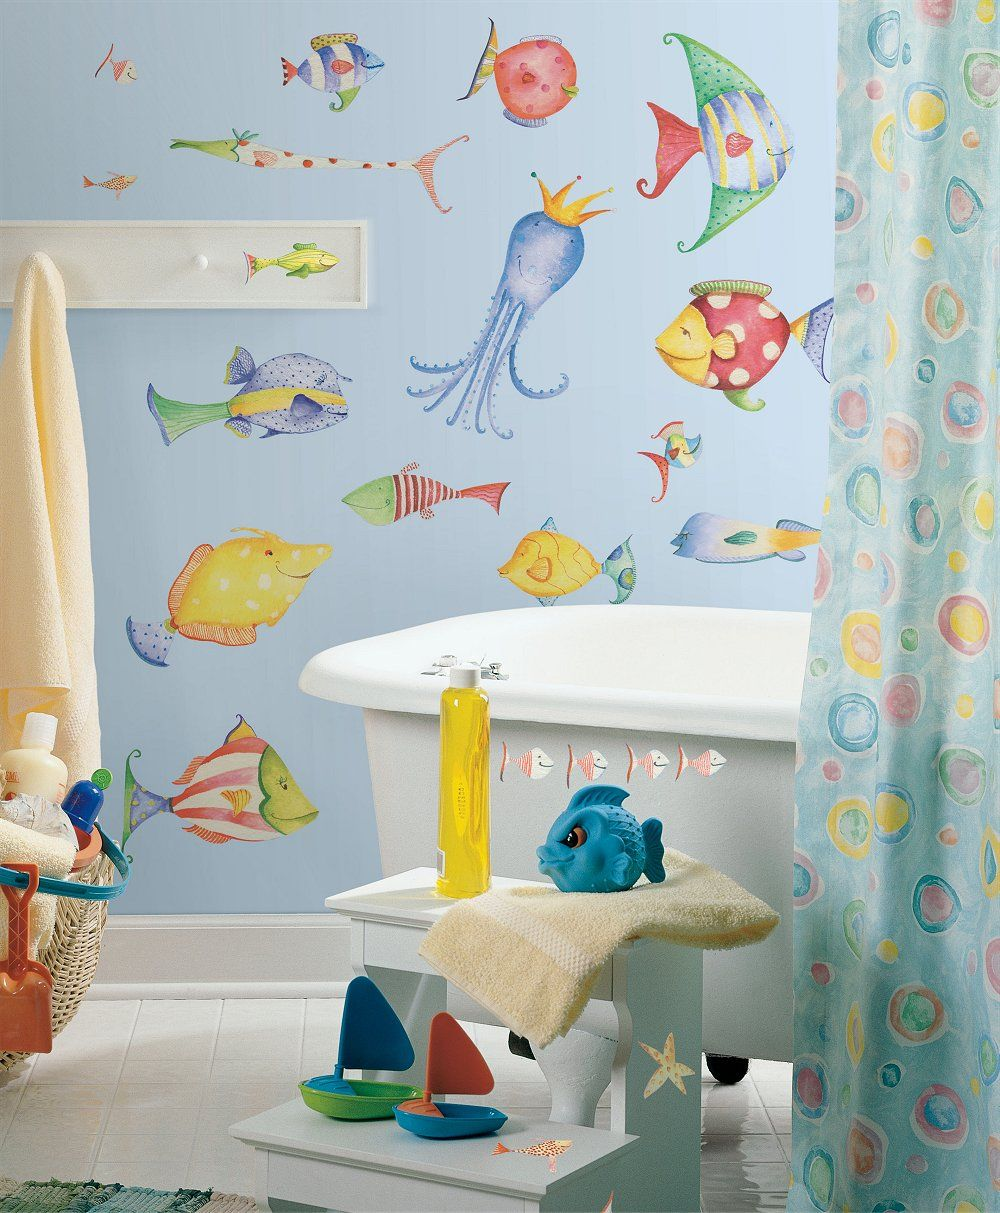 Image Result For Kids Bathroom Beach Theme Dragon Castle - Fish bath towels for small bathroom ideas